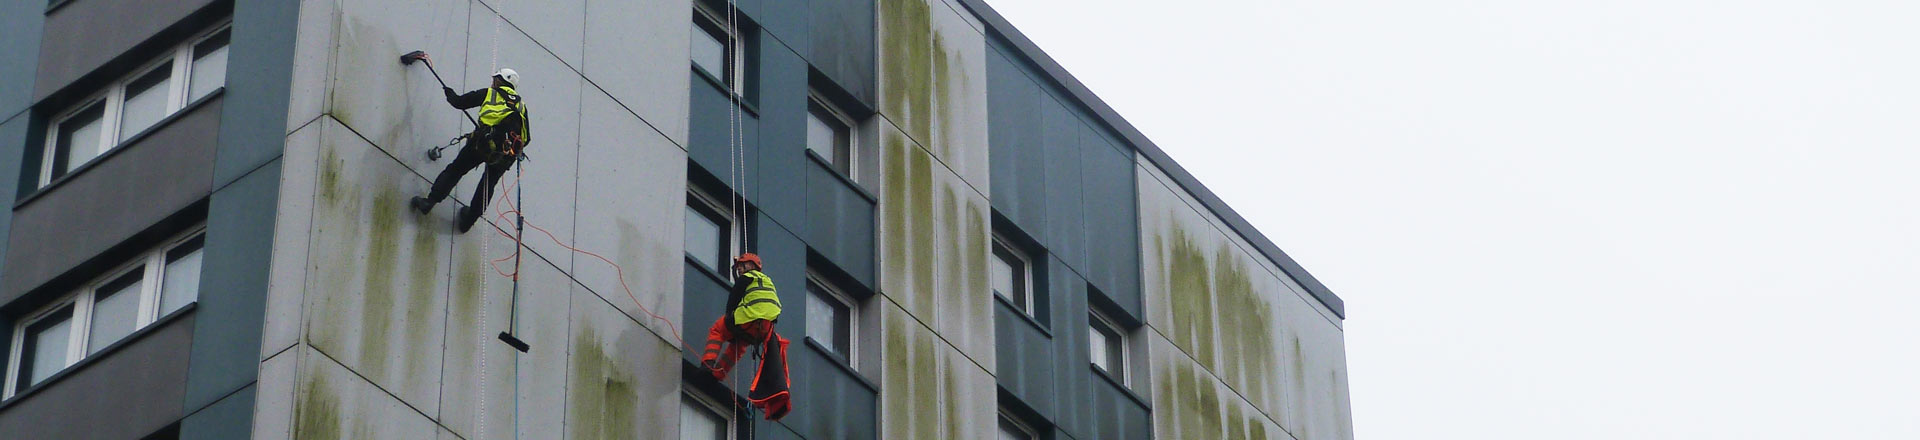 Commercial Cladding Cleaning in Manchester and the North West - HCS Cleaning Services